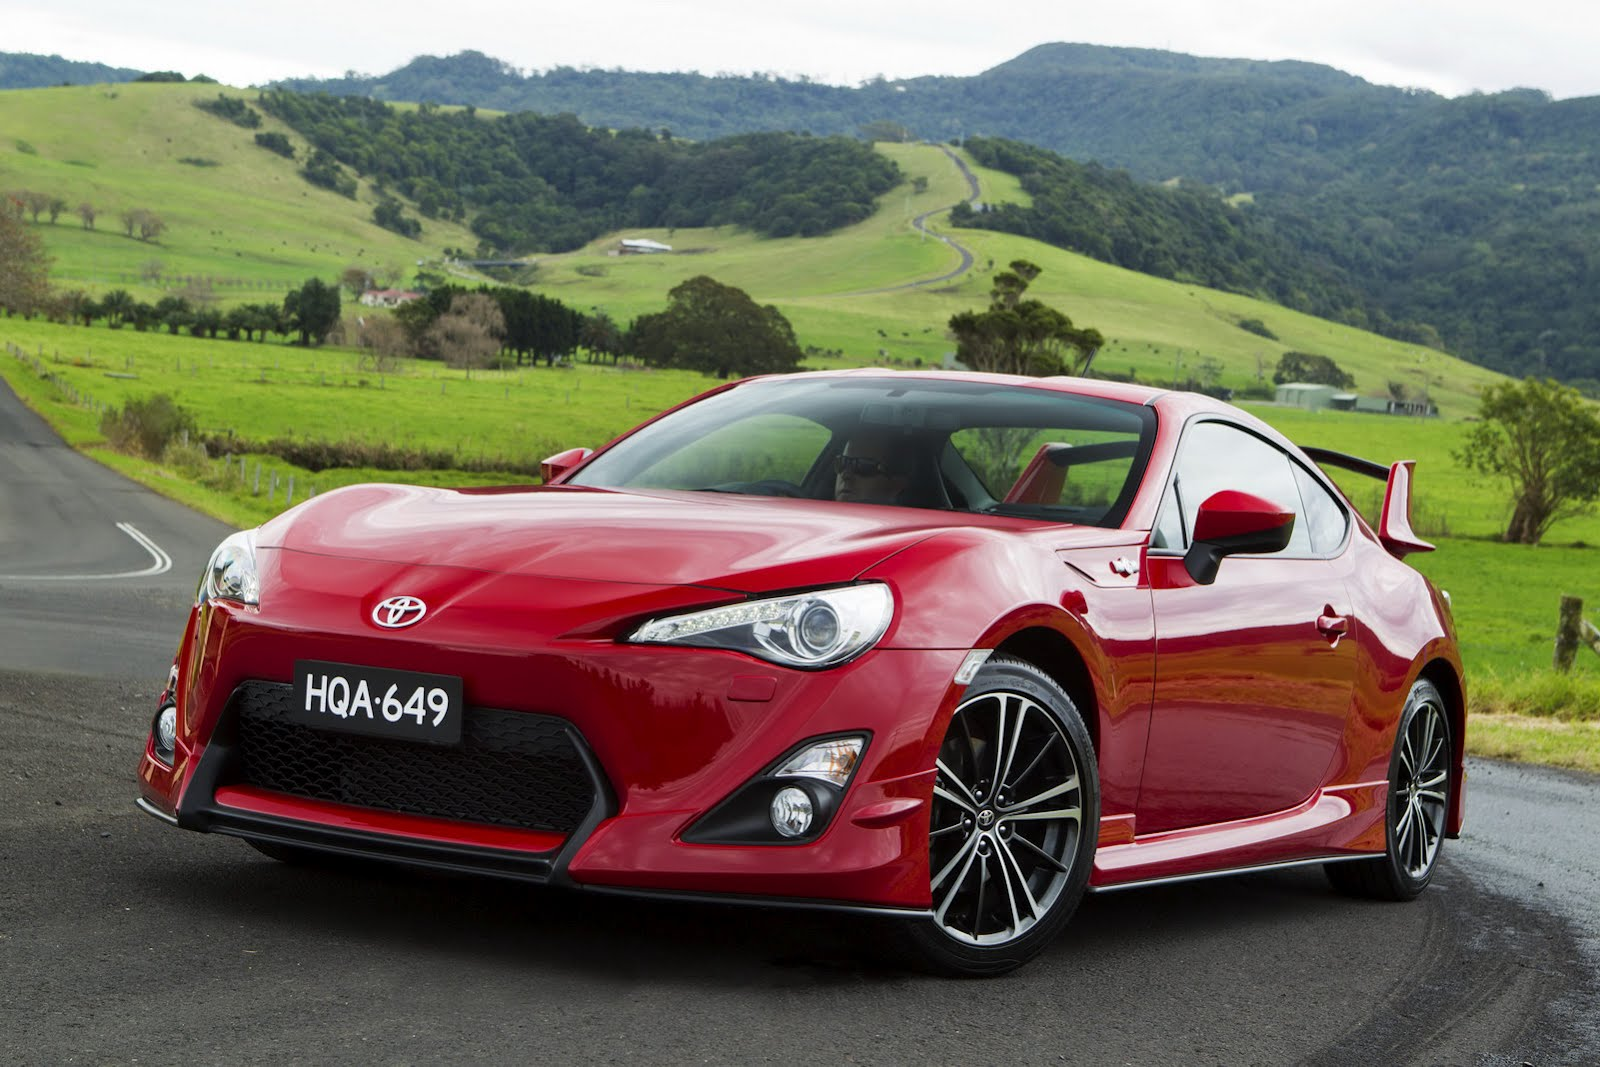 Toyota Scion Frs 2018 >> La Toyota GT-86 et la Golf 7 primées aux Top Gear awards - Blog auto